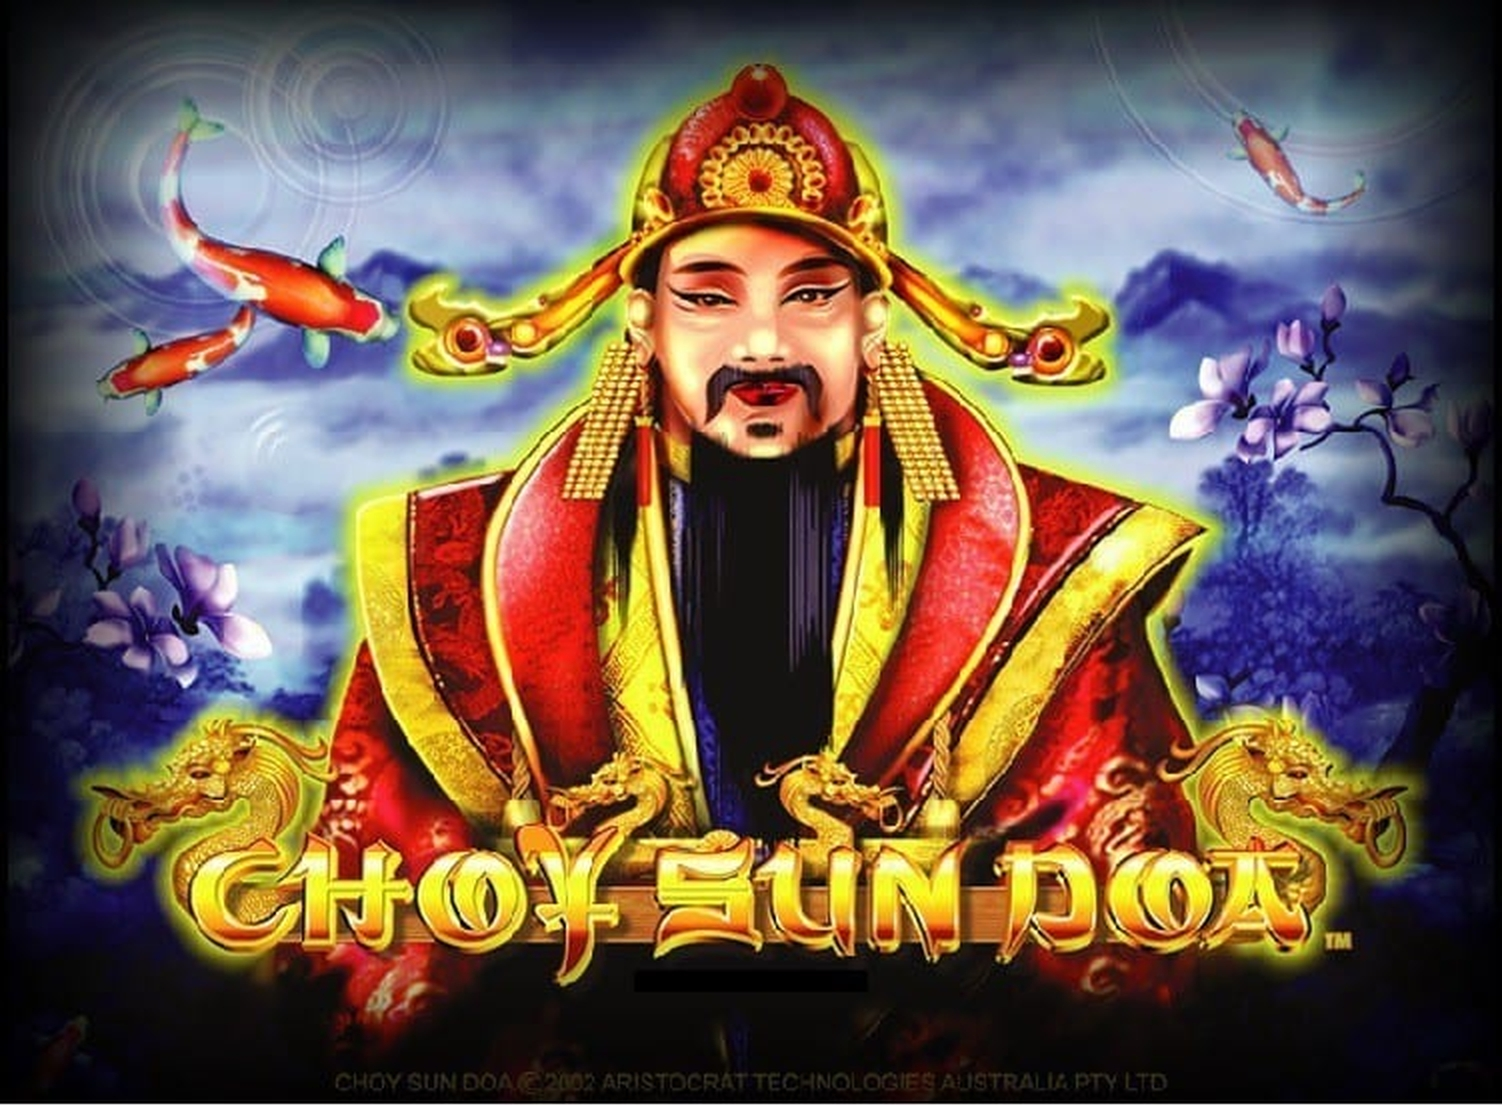 The Choy Sun Doa Online Slot Demo Game by Aristocrat